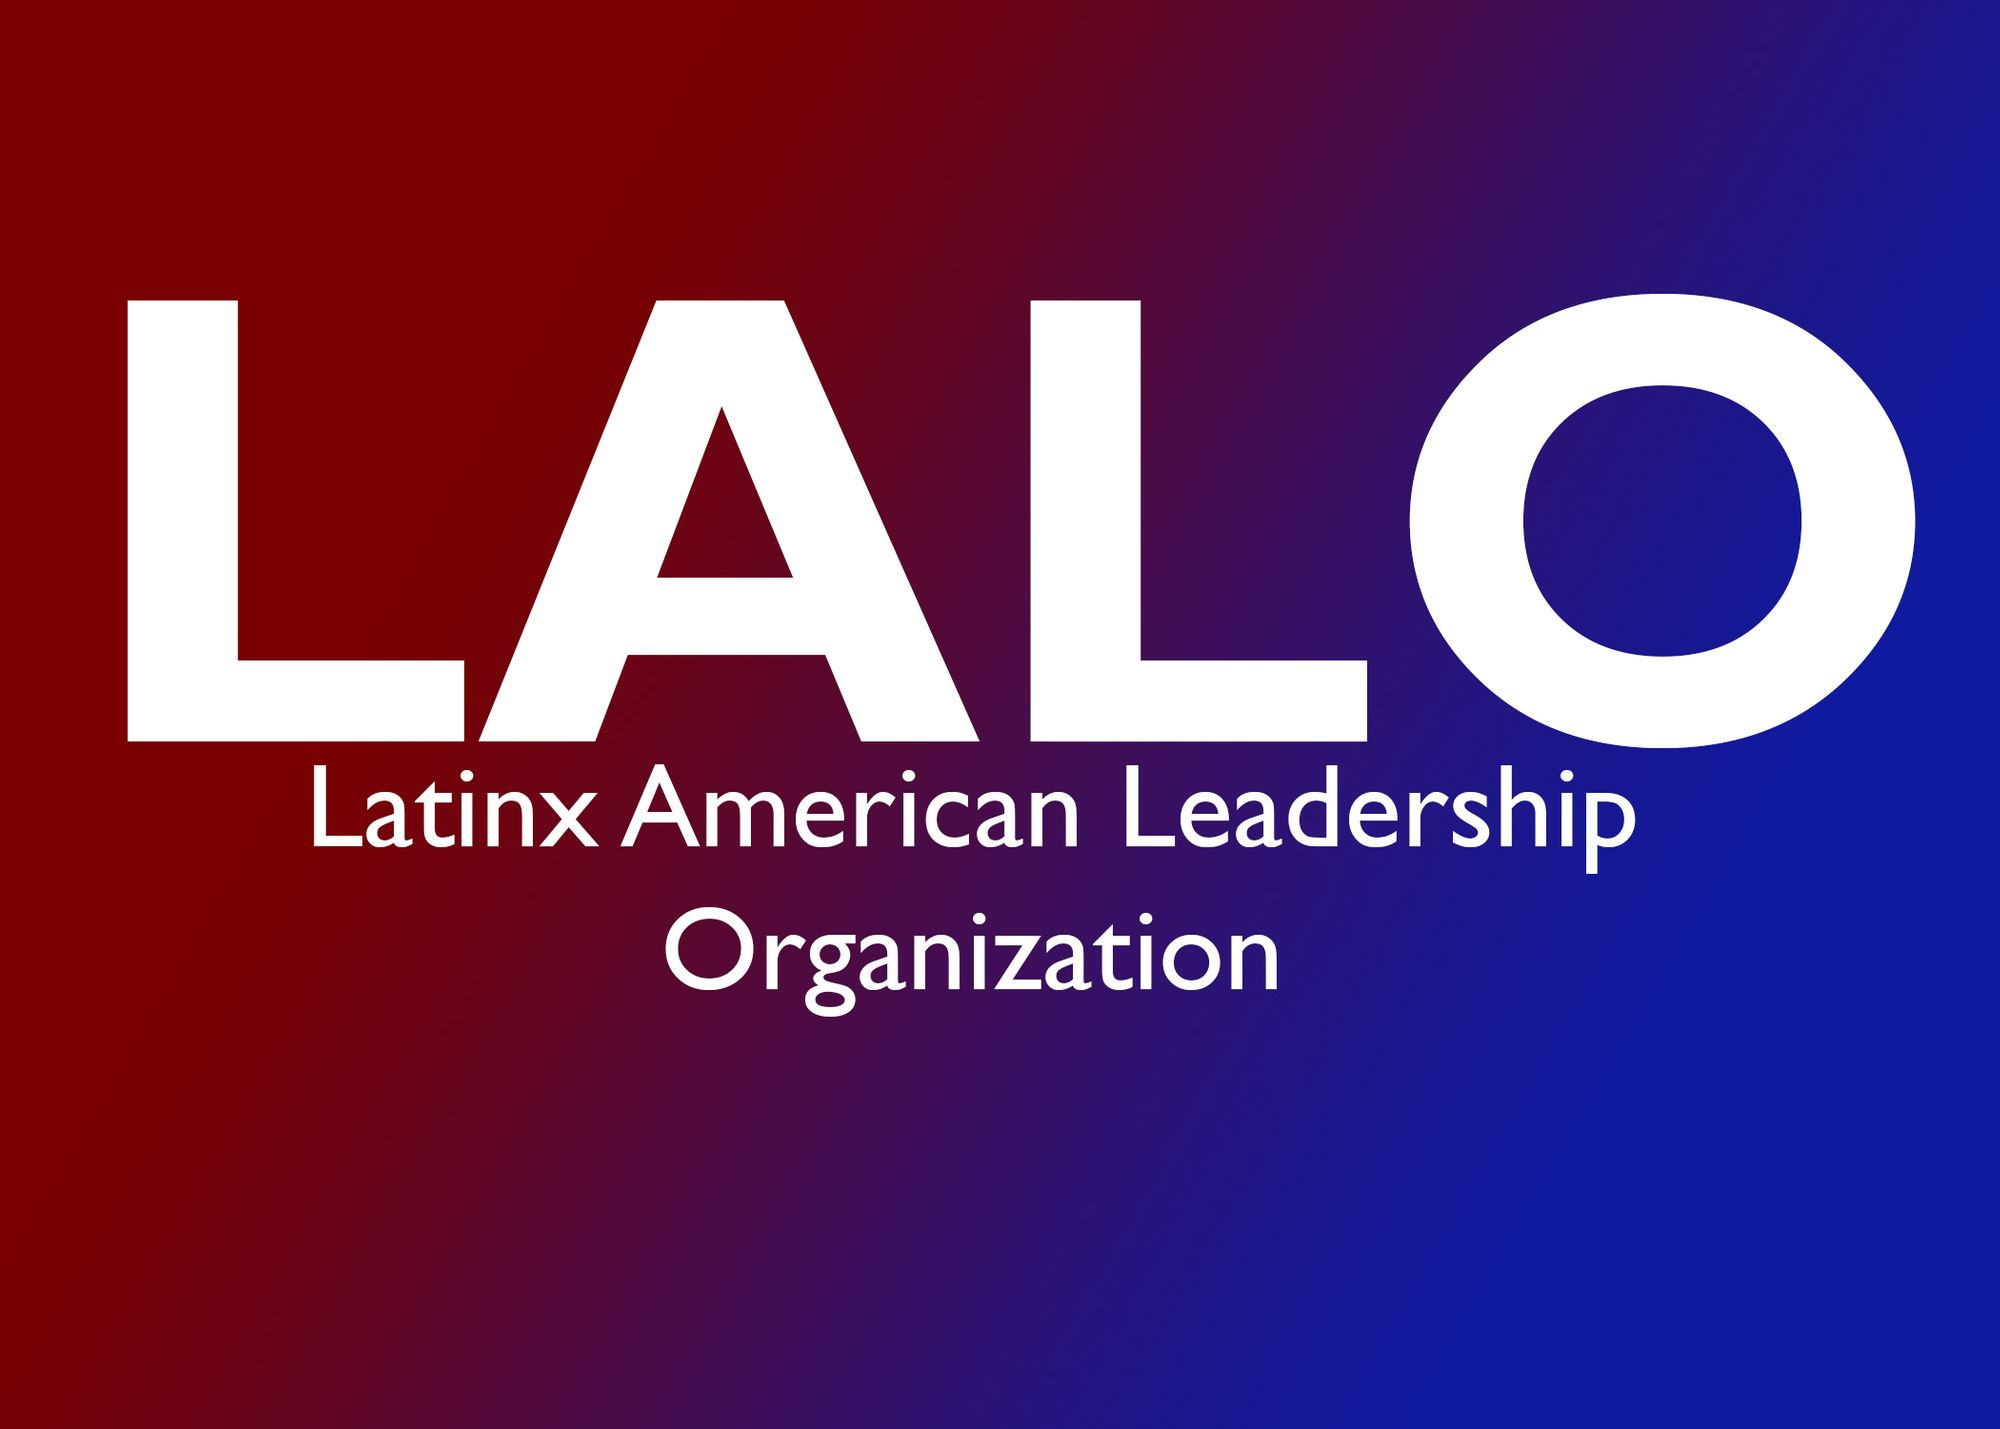 HALO to LALO: Cultural club changes name